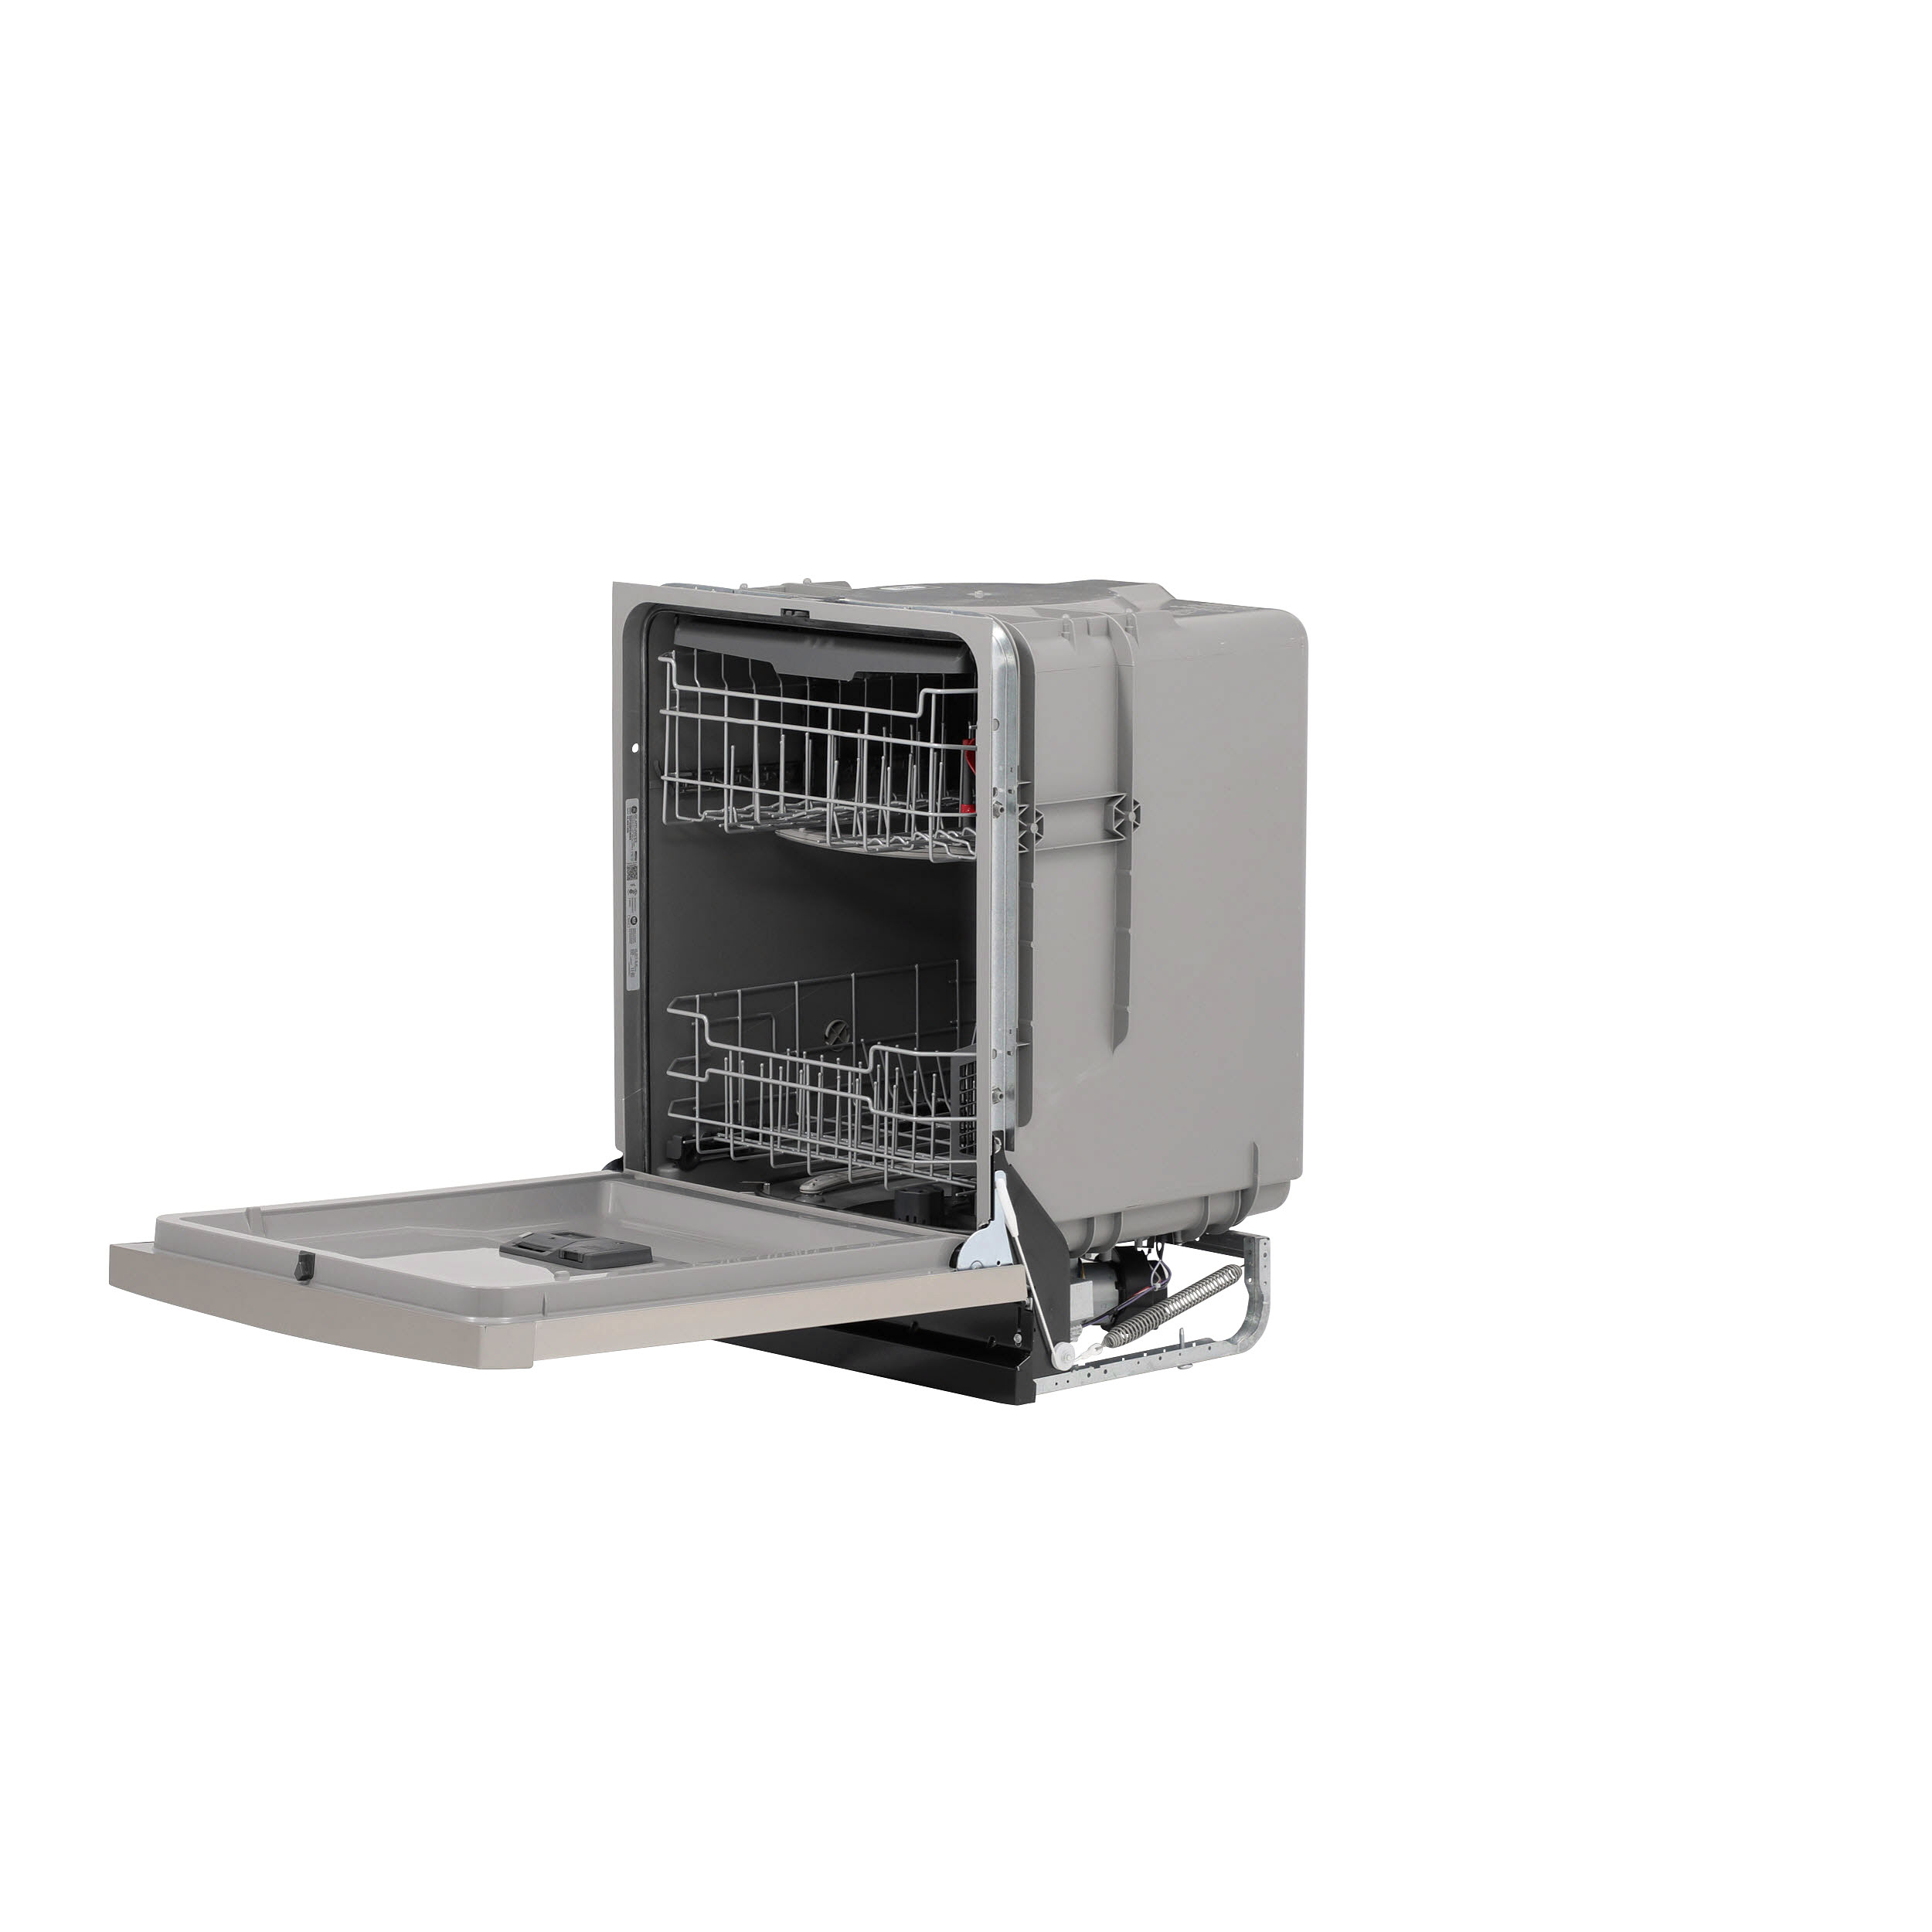 Model: GDF630PSMSS | GE GE® Front Control with Plastic Interior Dishwasher with Sanitize Cycle & Dry Boost